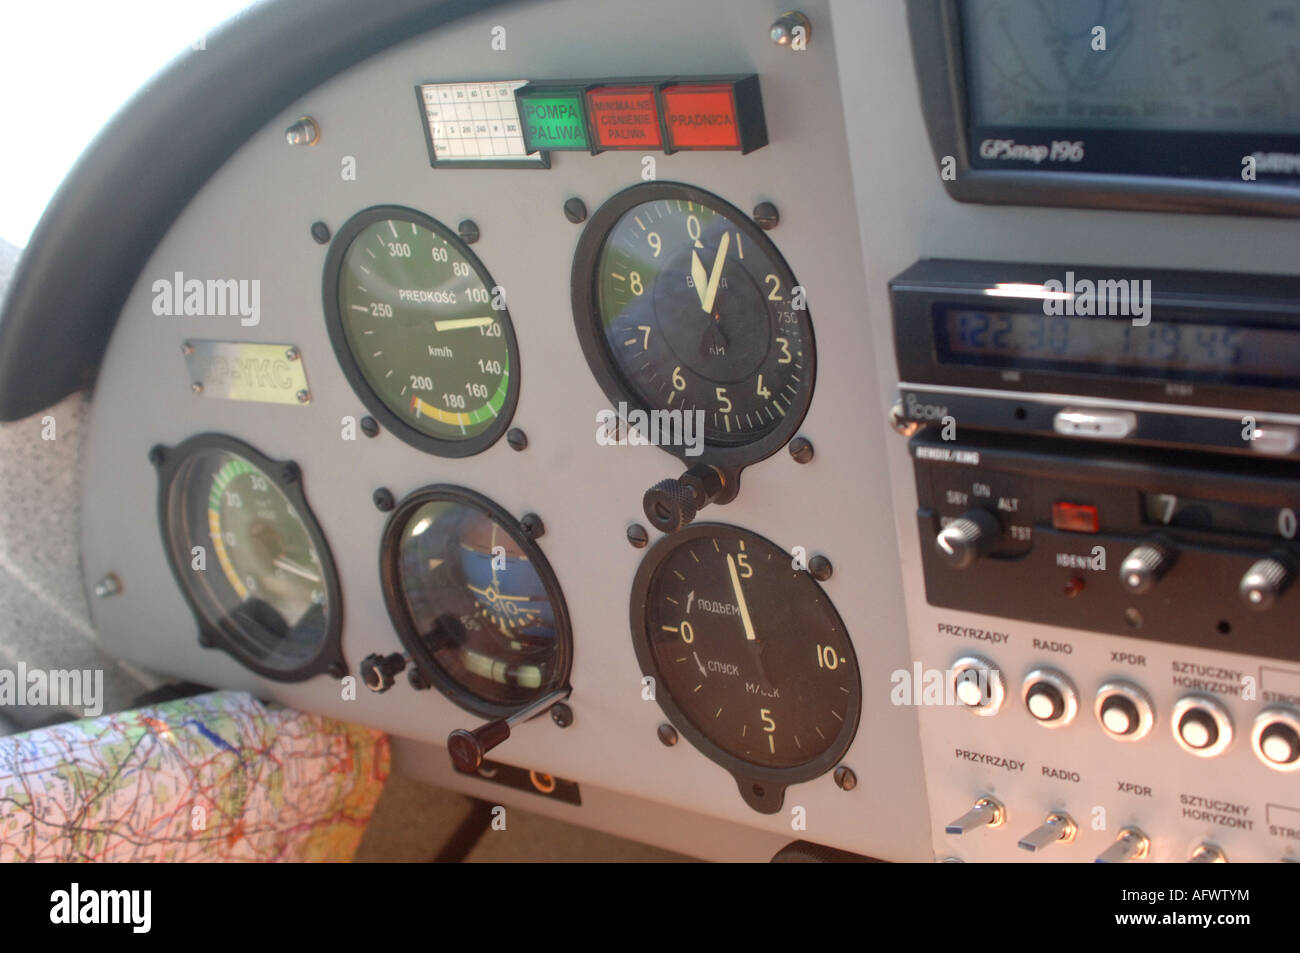 Airplane interior featuring Russian instruments and a European design just after takeoff. Climbing at 500 meters/min - Stock Image